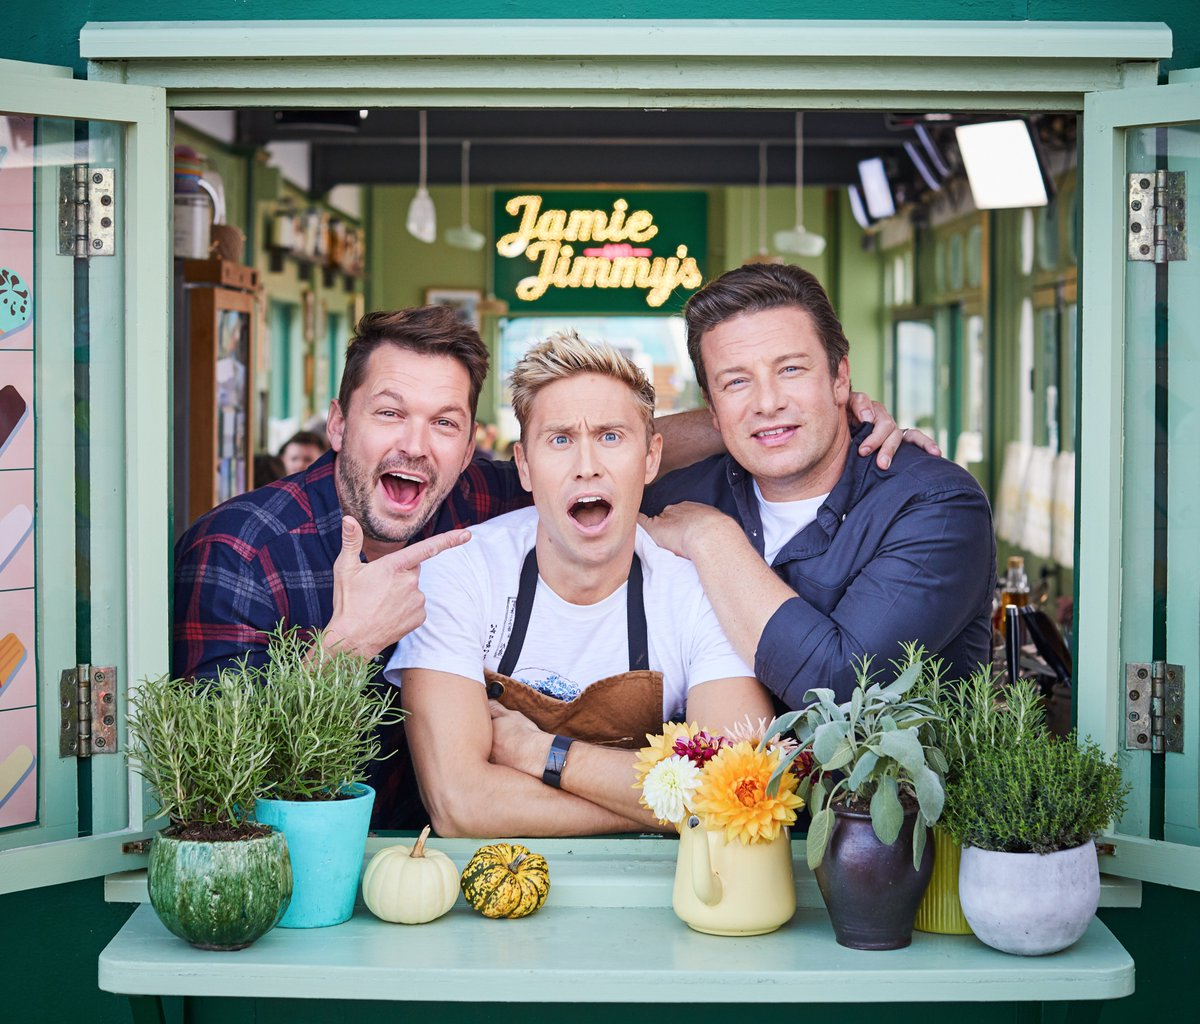 When we told @RussellHoward what's on tonight's #FridayNightFeast menu...  Switch over to @Channel4 now. https://t.co/Y6XZY9OkgM